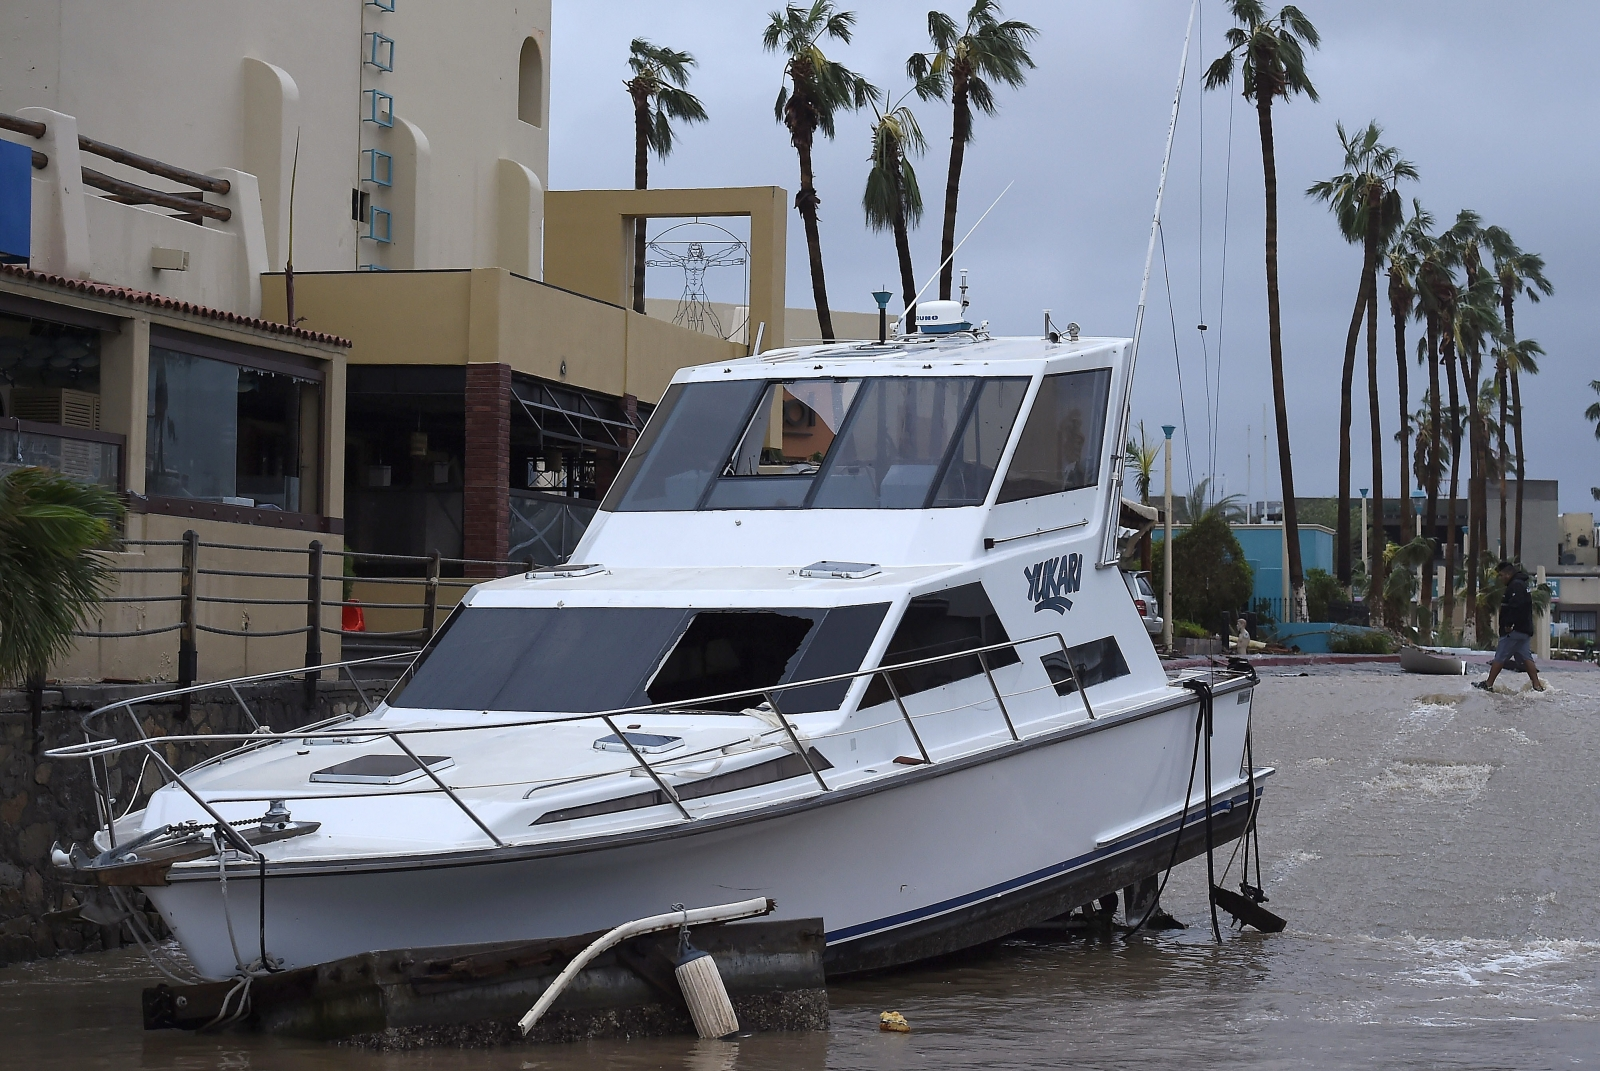 A yacht washed ashore by Hurricane Odile in Cabo San Lucas, on mexico's Baja California peninsular. (Getty)